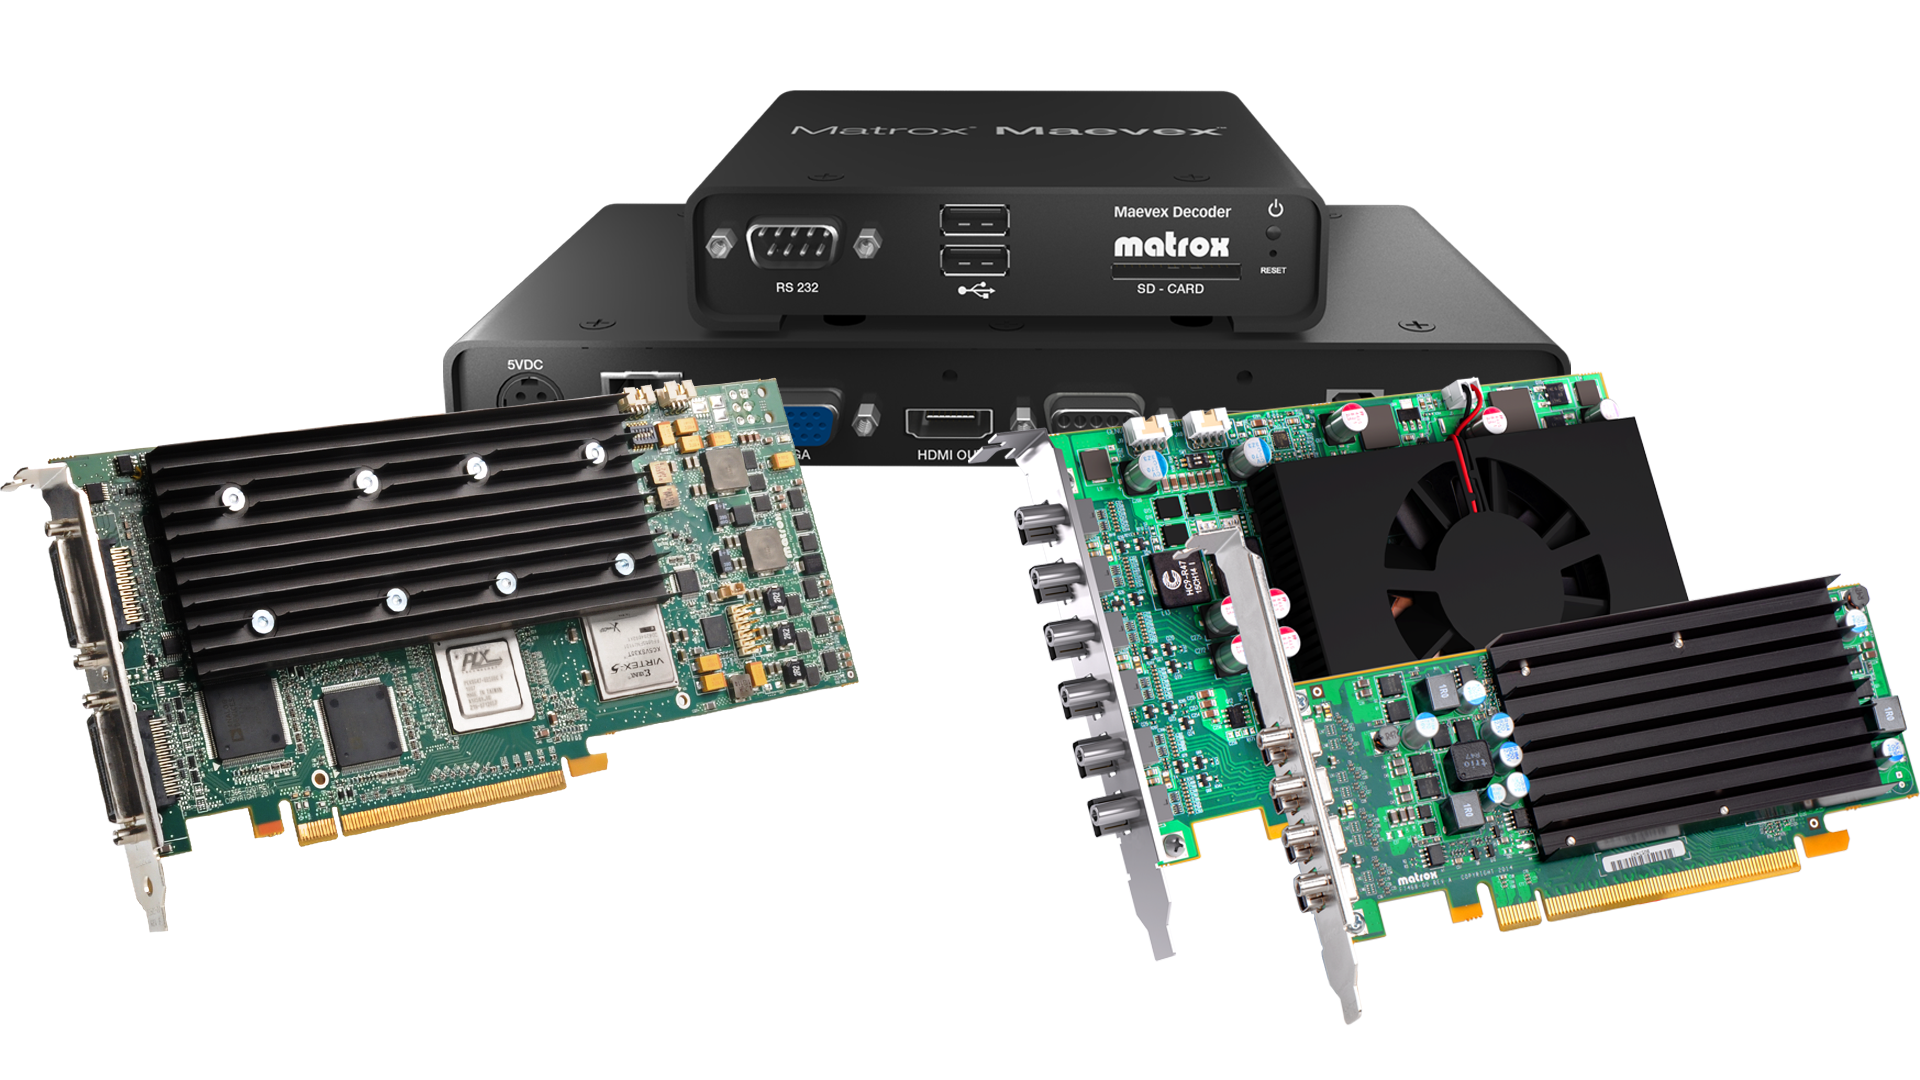 InfoComm MEA 2014: Latest Matrox Graphics Products to Be Used by Industry Leaders to Drive Multi-Display Signage, Distribute AV-over-IP, and Capture/Display Video Wall Content